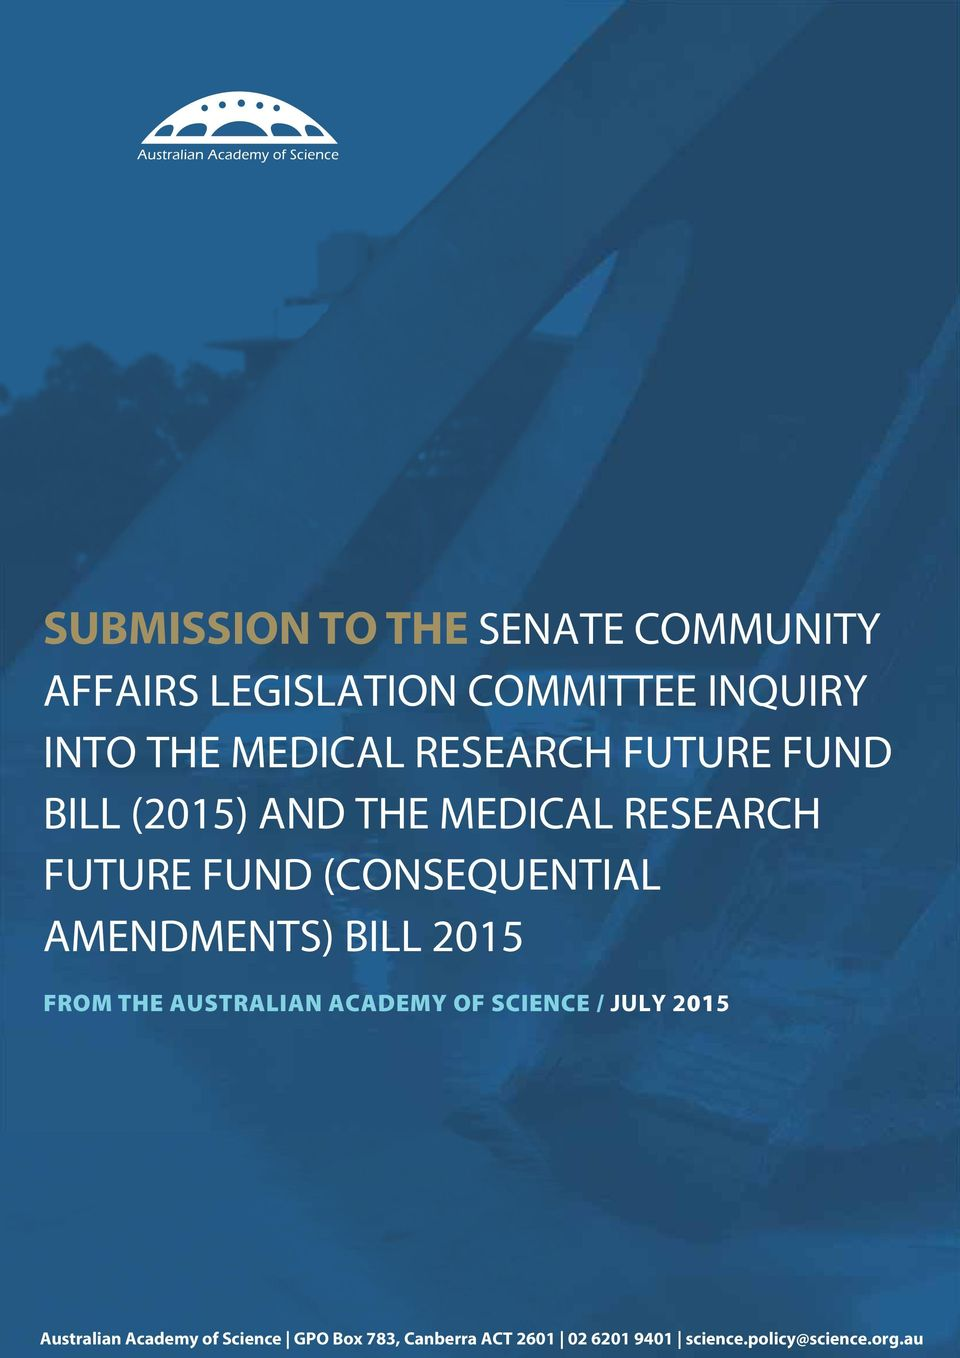 (CONSEQUENTIAL AMENDMENTS) BILL 2015 FROM THE AUSTRALIAN ACADEMY OF SCIENCE / JULY 2015